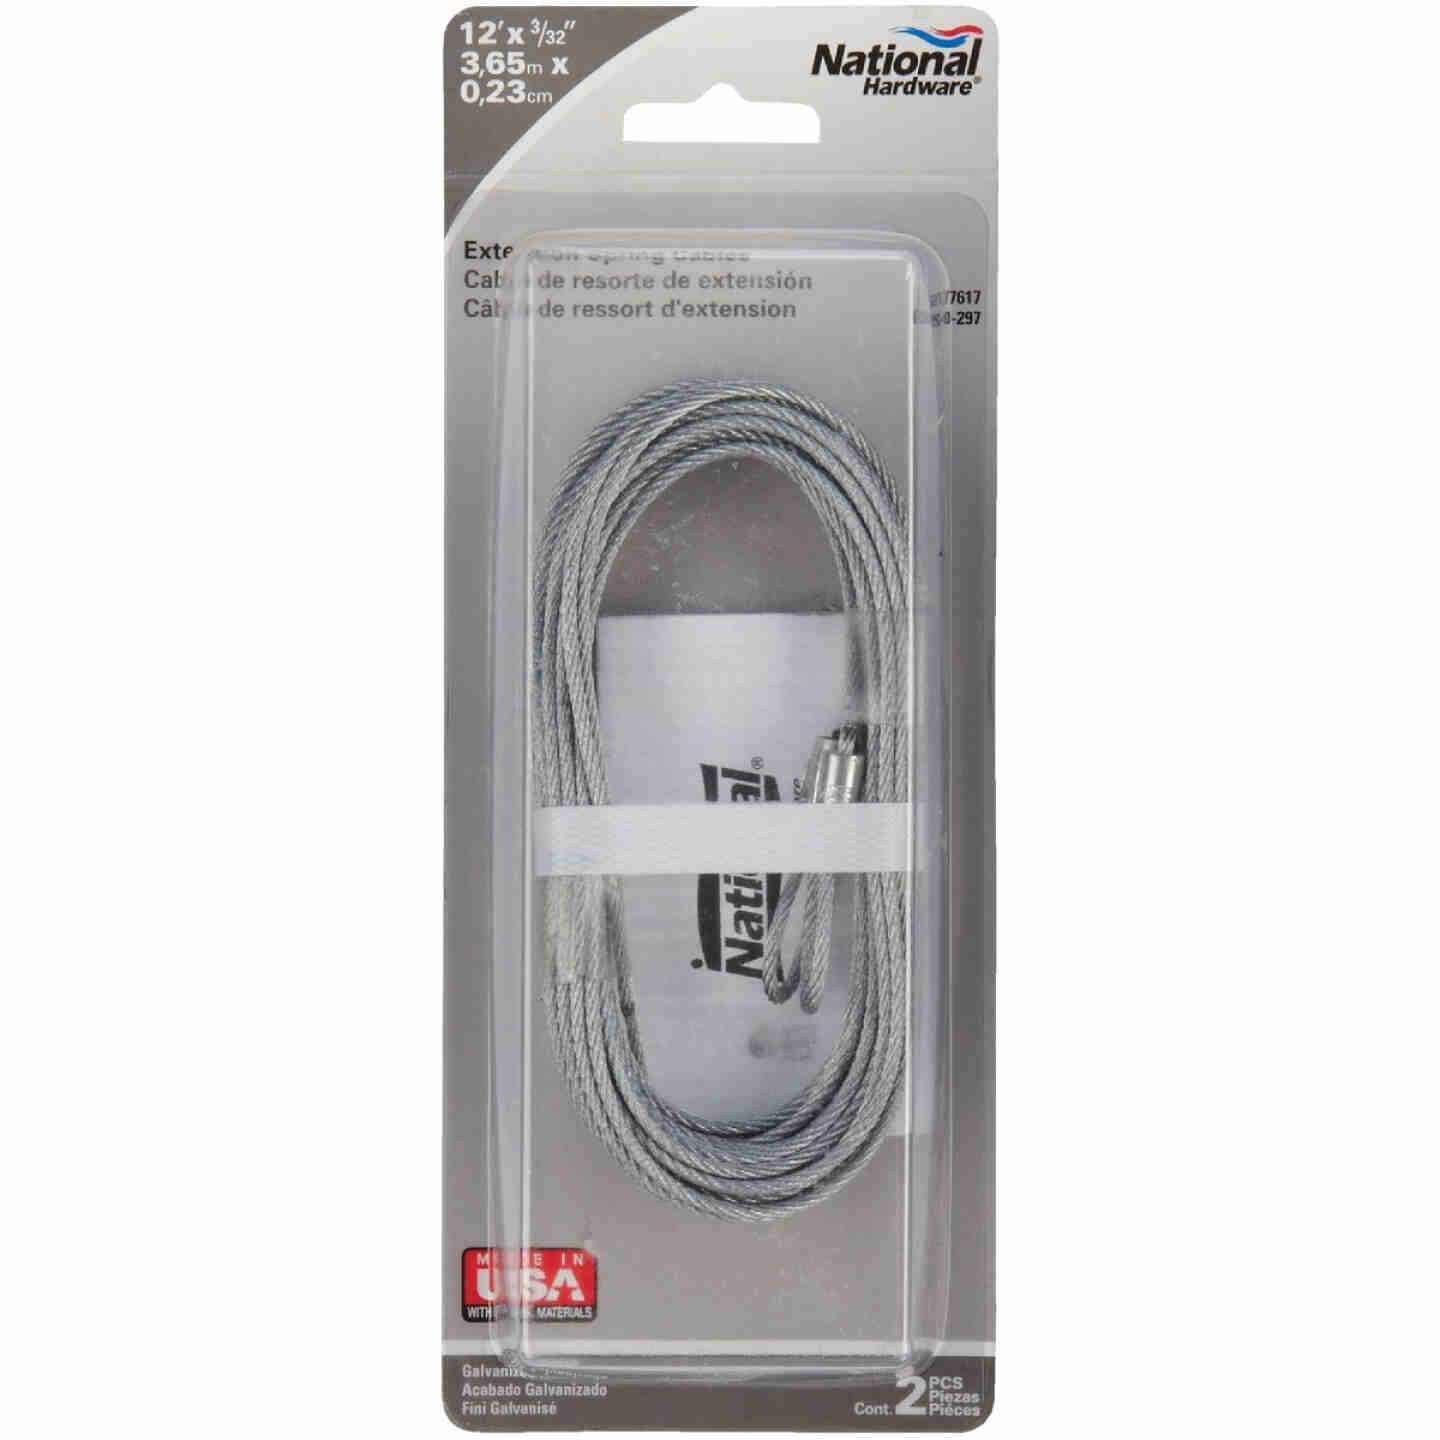 Prime-Line 3/32 In. Carbon Steel Extension Cable Image 2